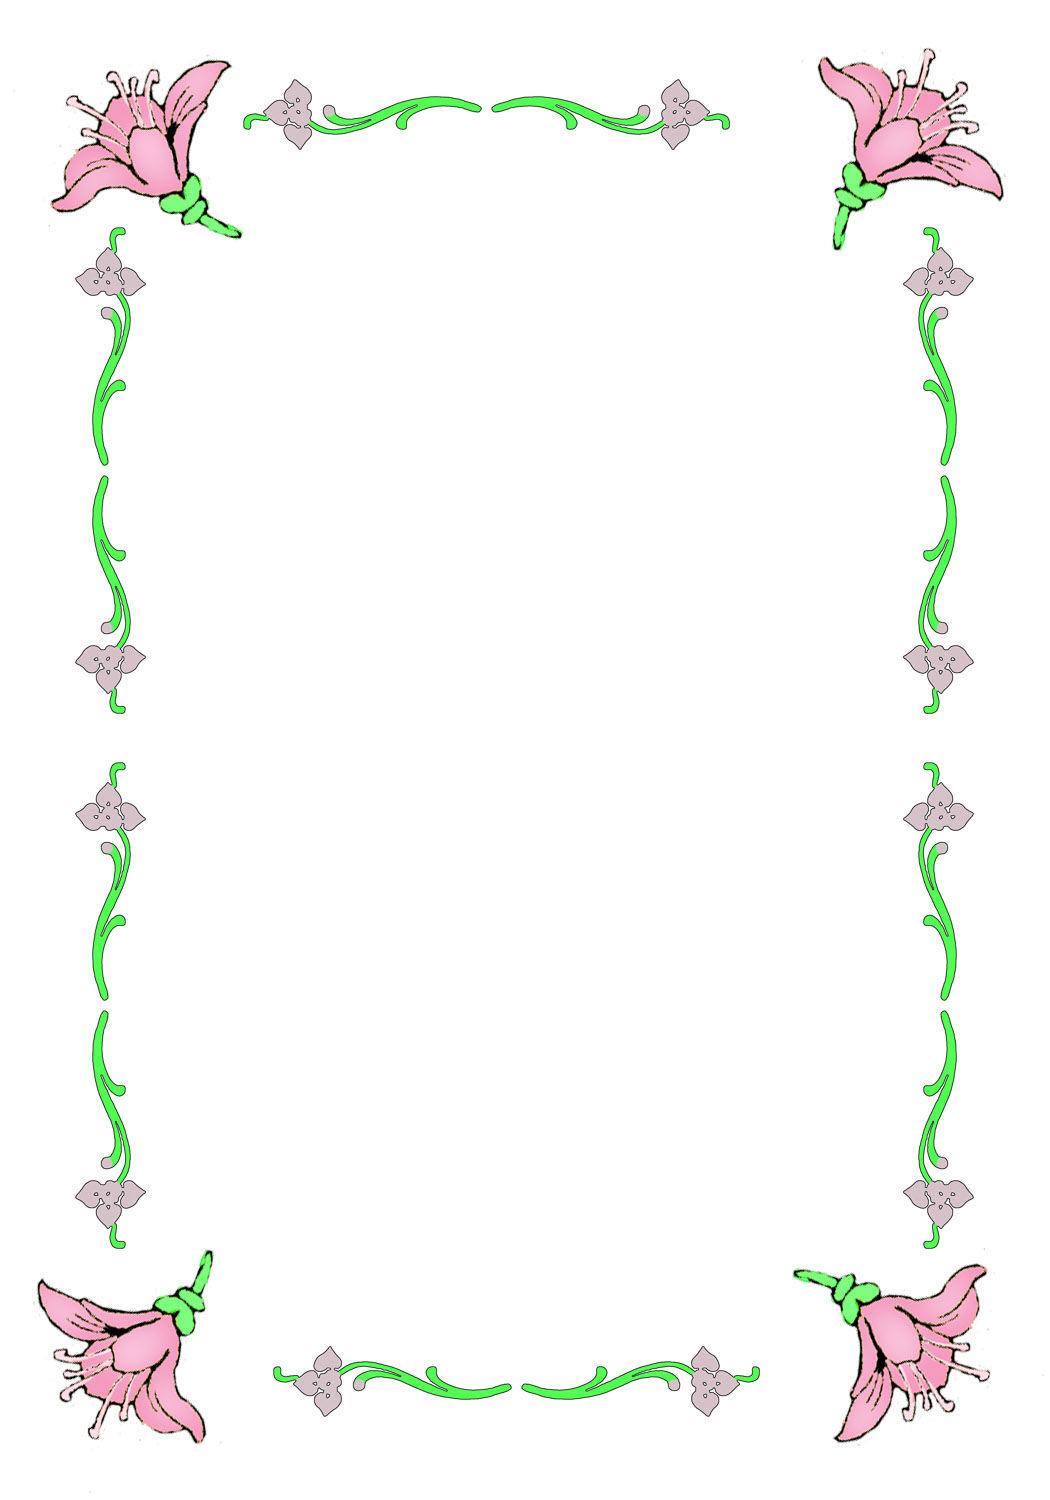 image relating to Free Printable Borders and Frames named Absolutely free Printable Borders for Easter